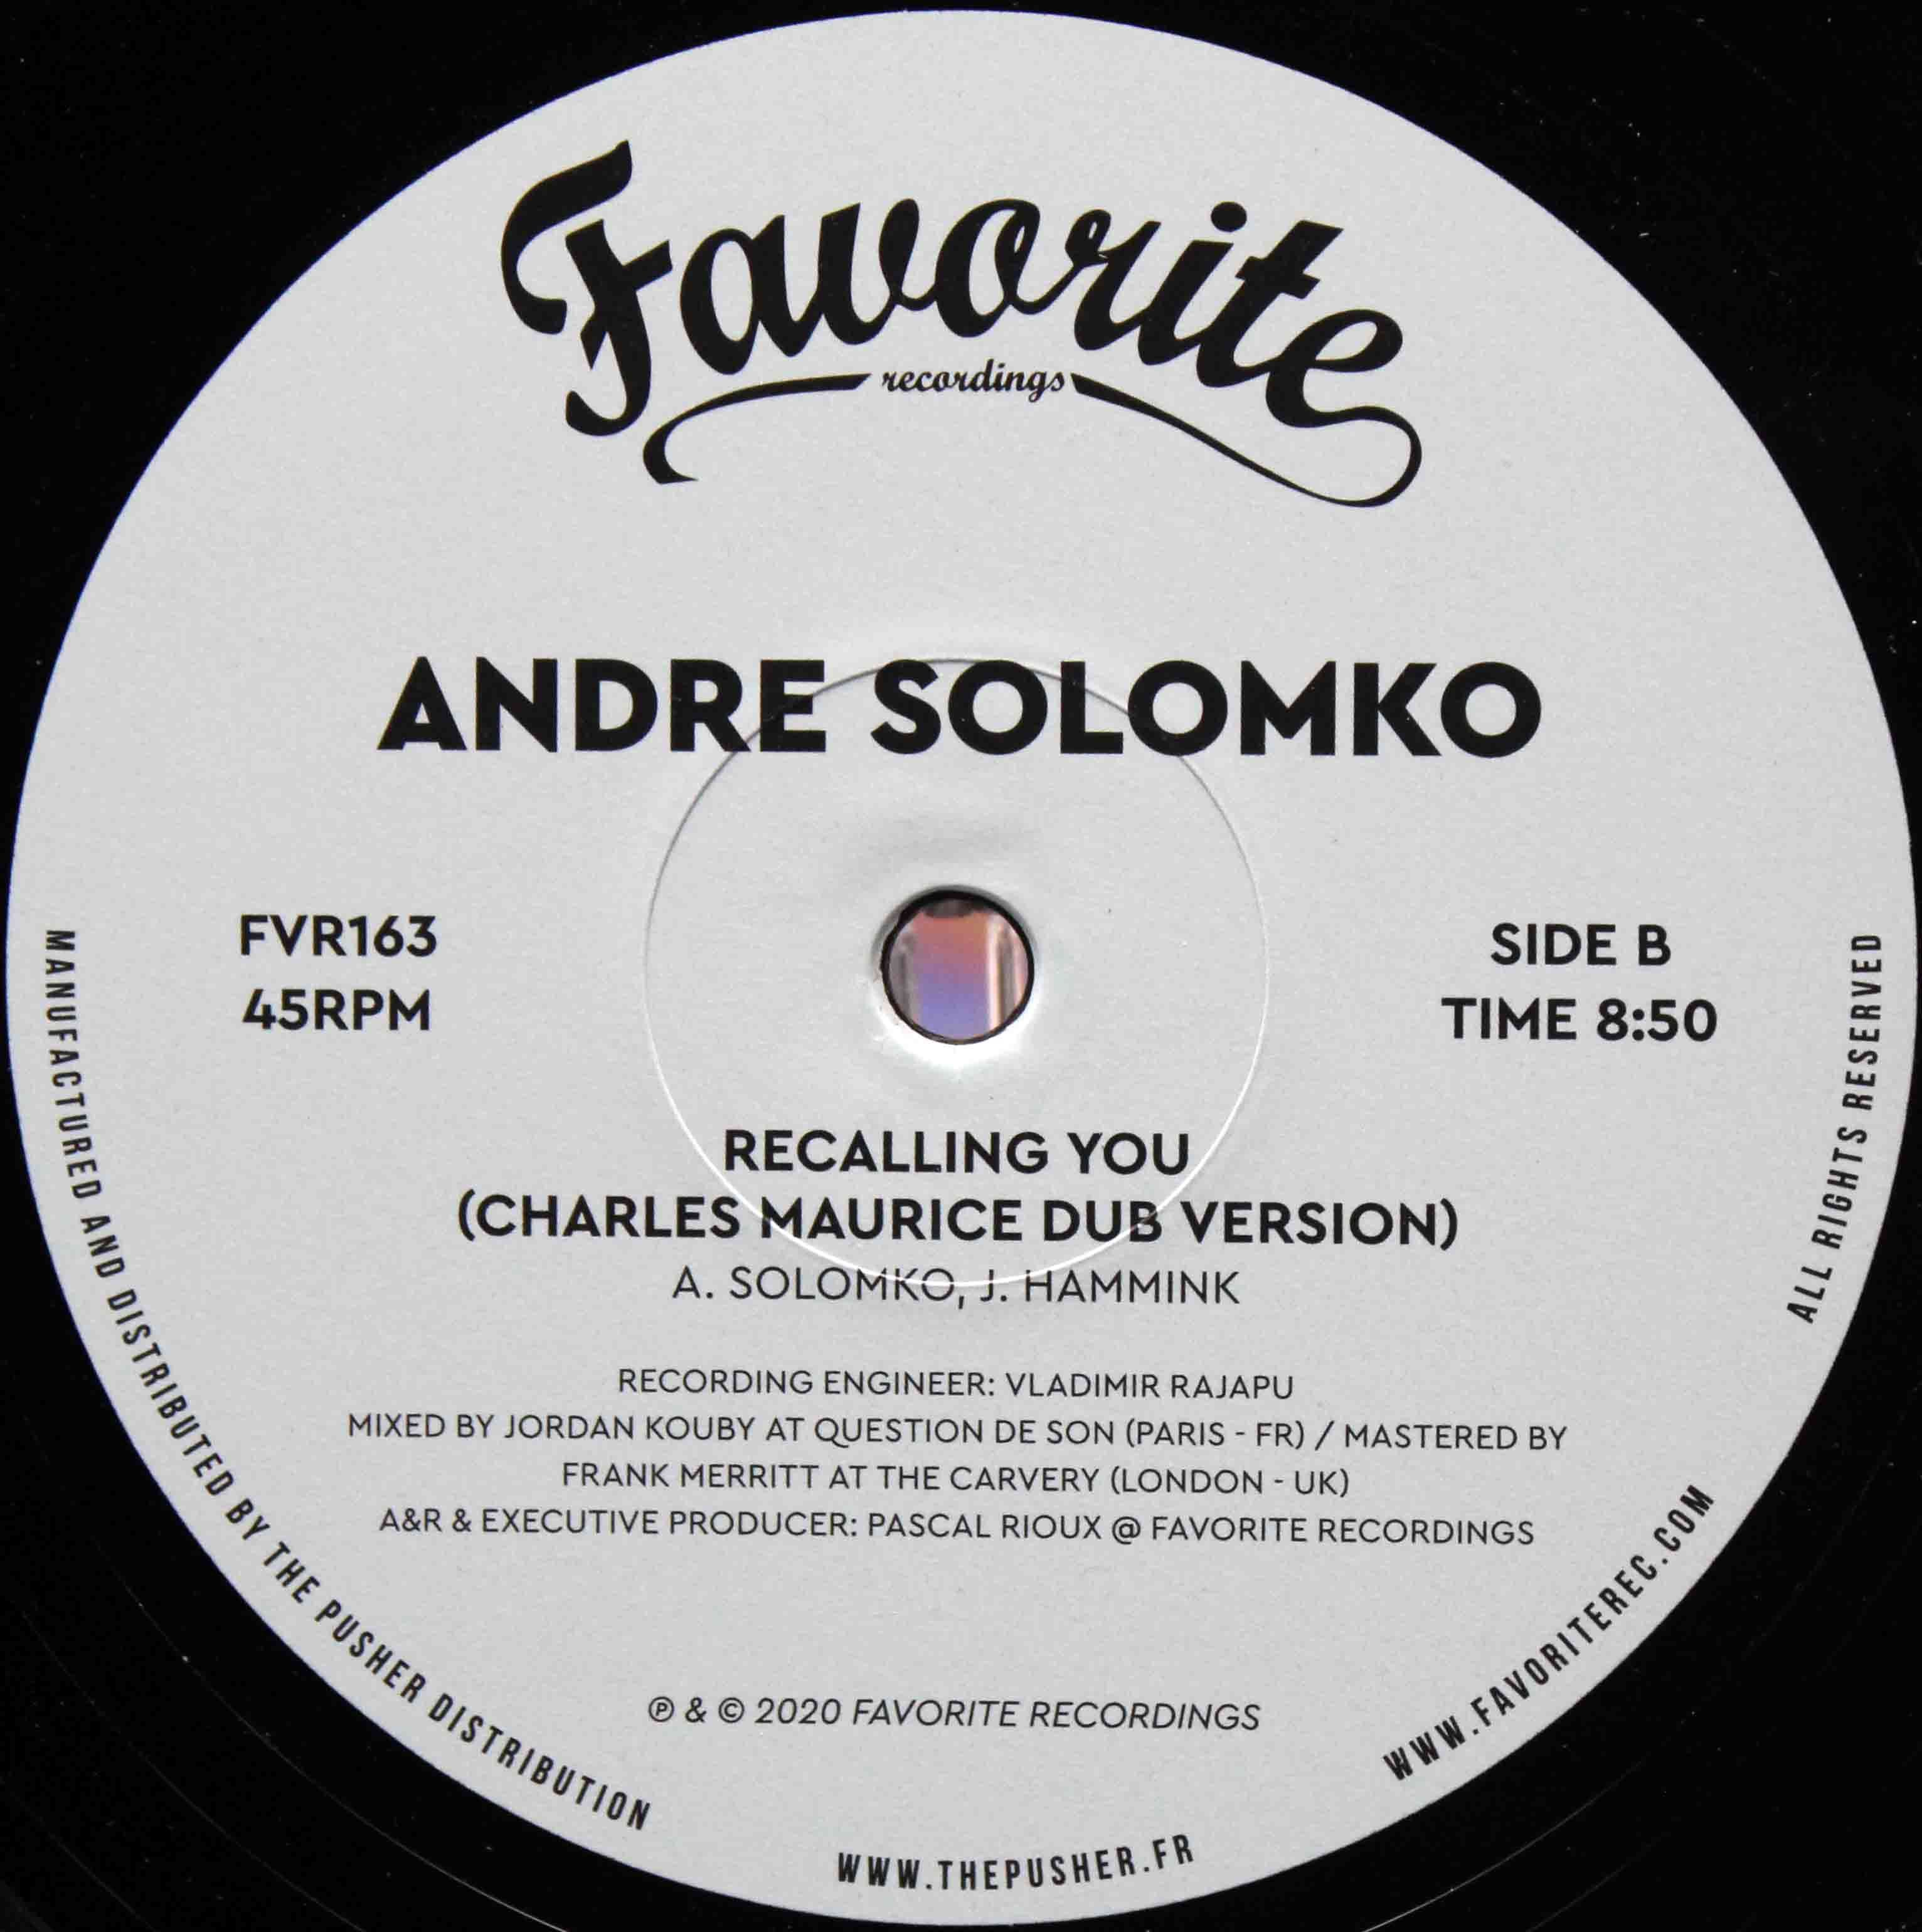 Andre Solomko – Recalling You 04